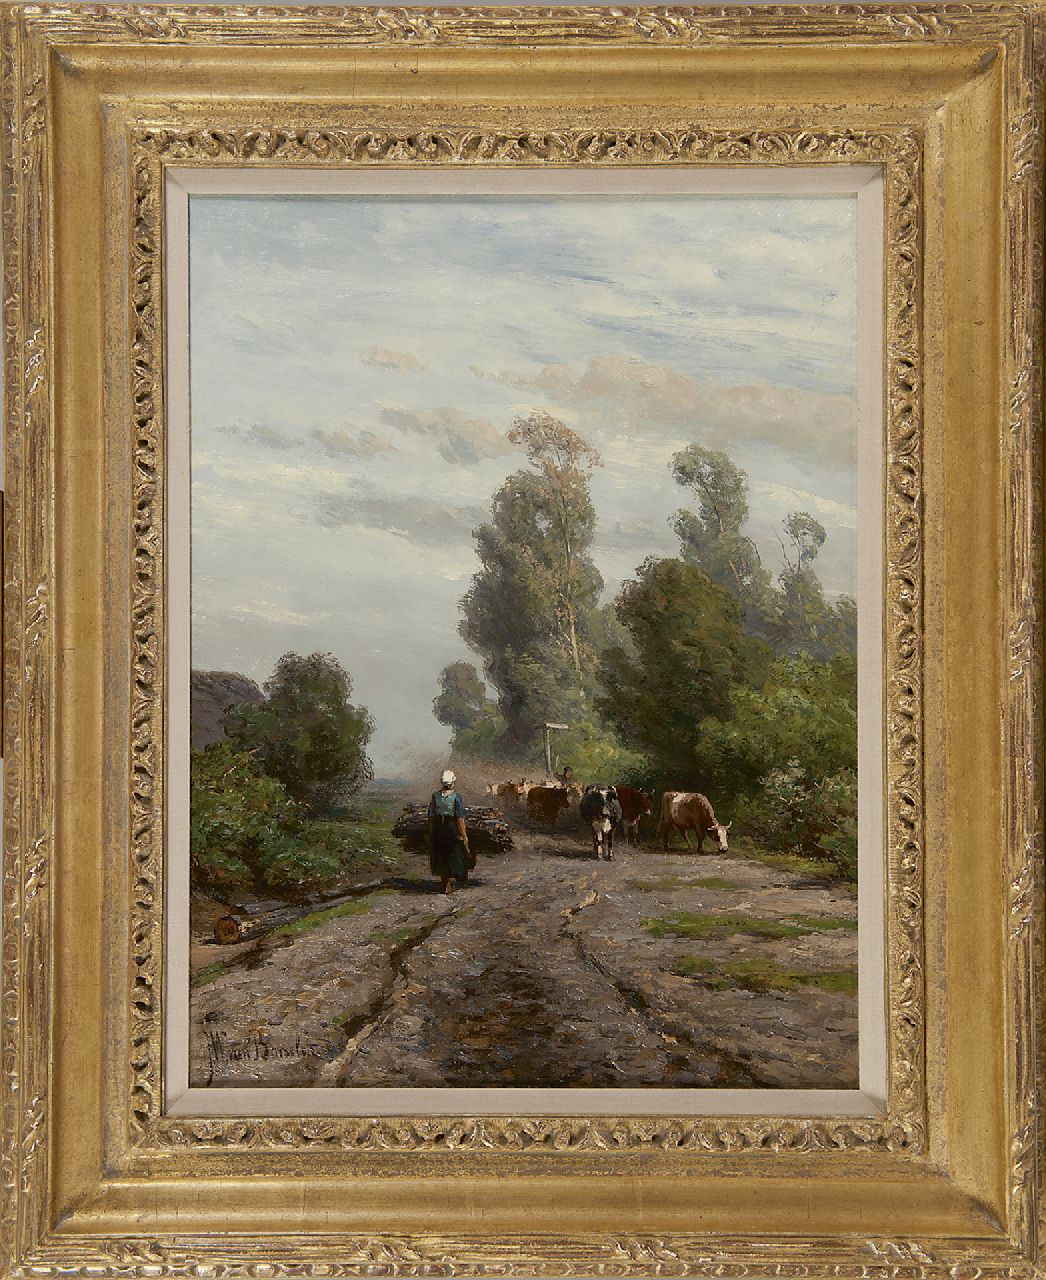 Borselen J.W. van | Jan Willem van Borselen, A summer landscape with a cowherd and cattle, oil on canvas 40.9 x 31.0 cm, signed l.l.